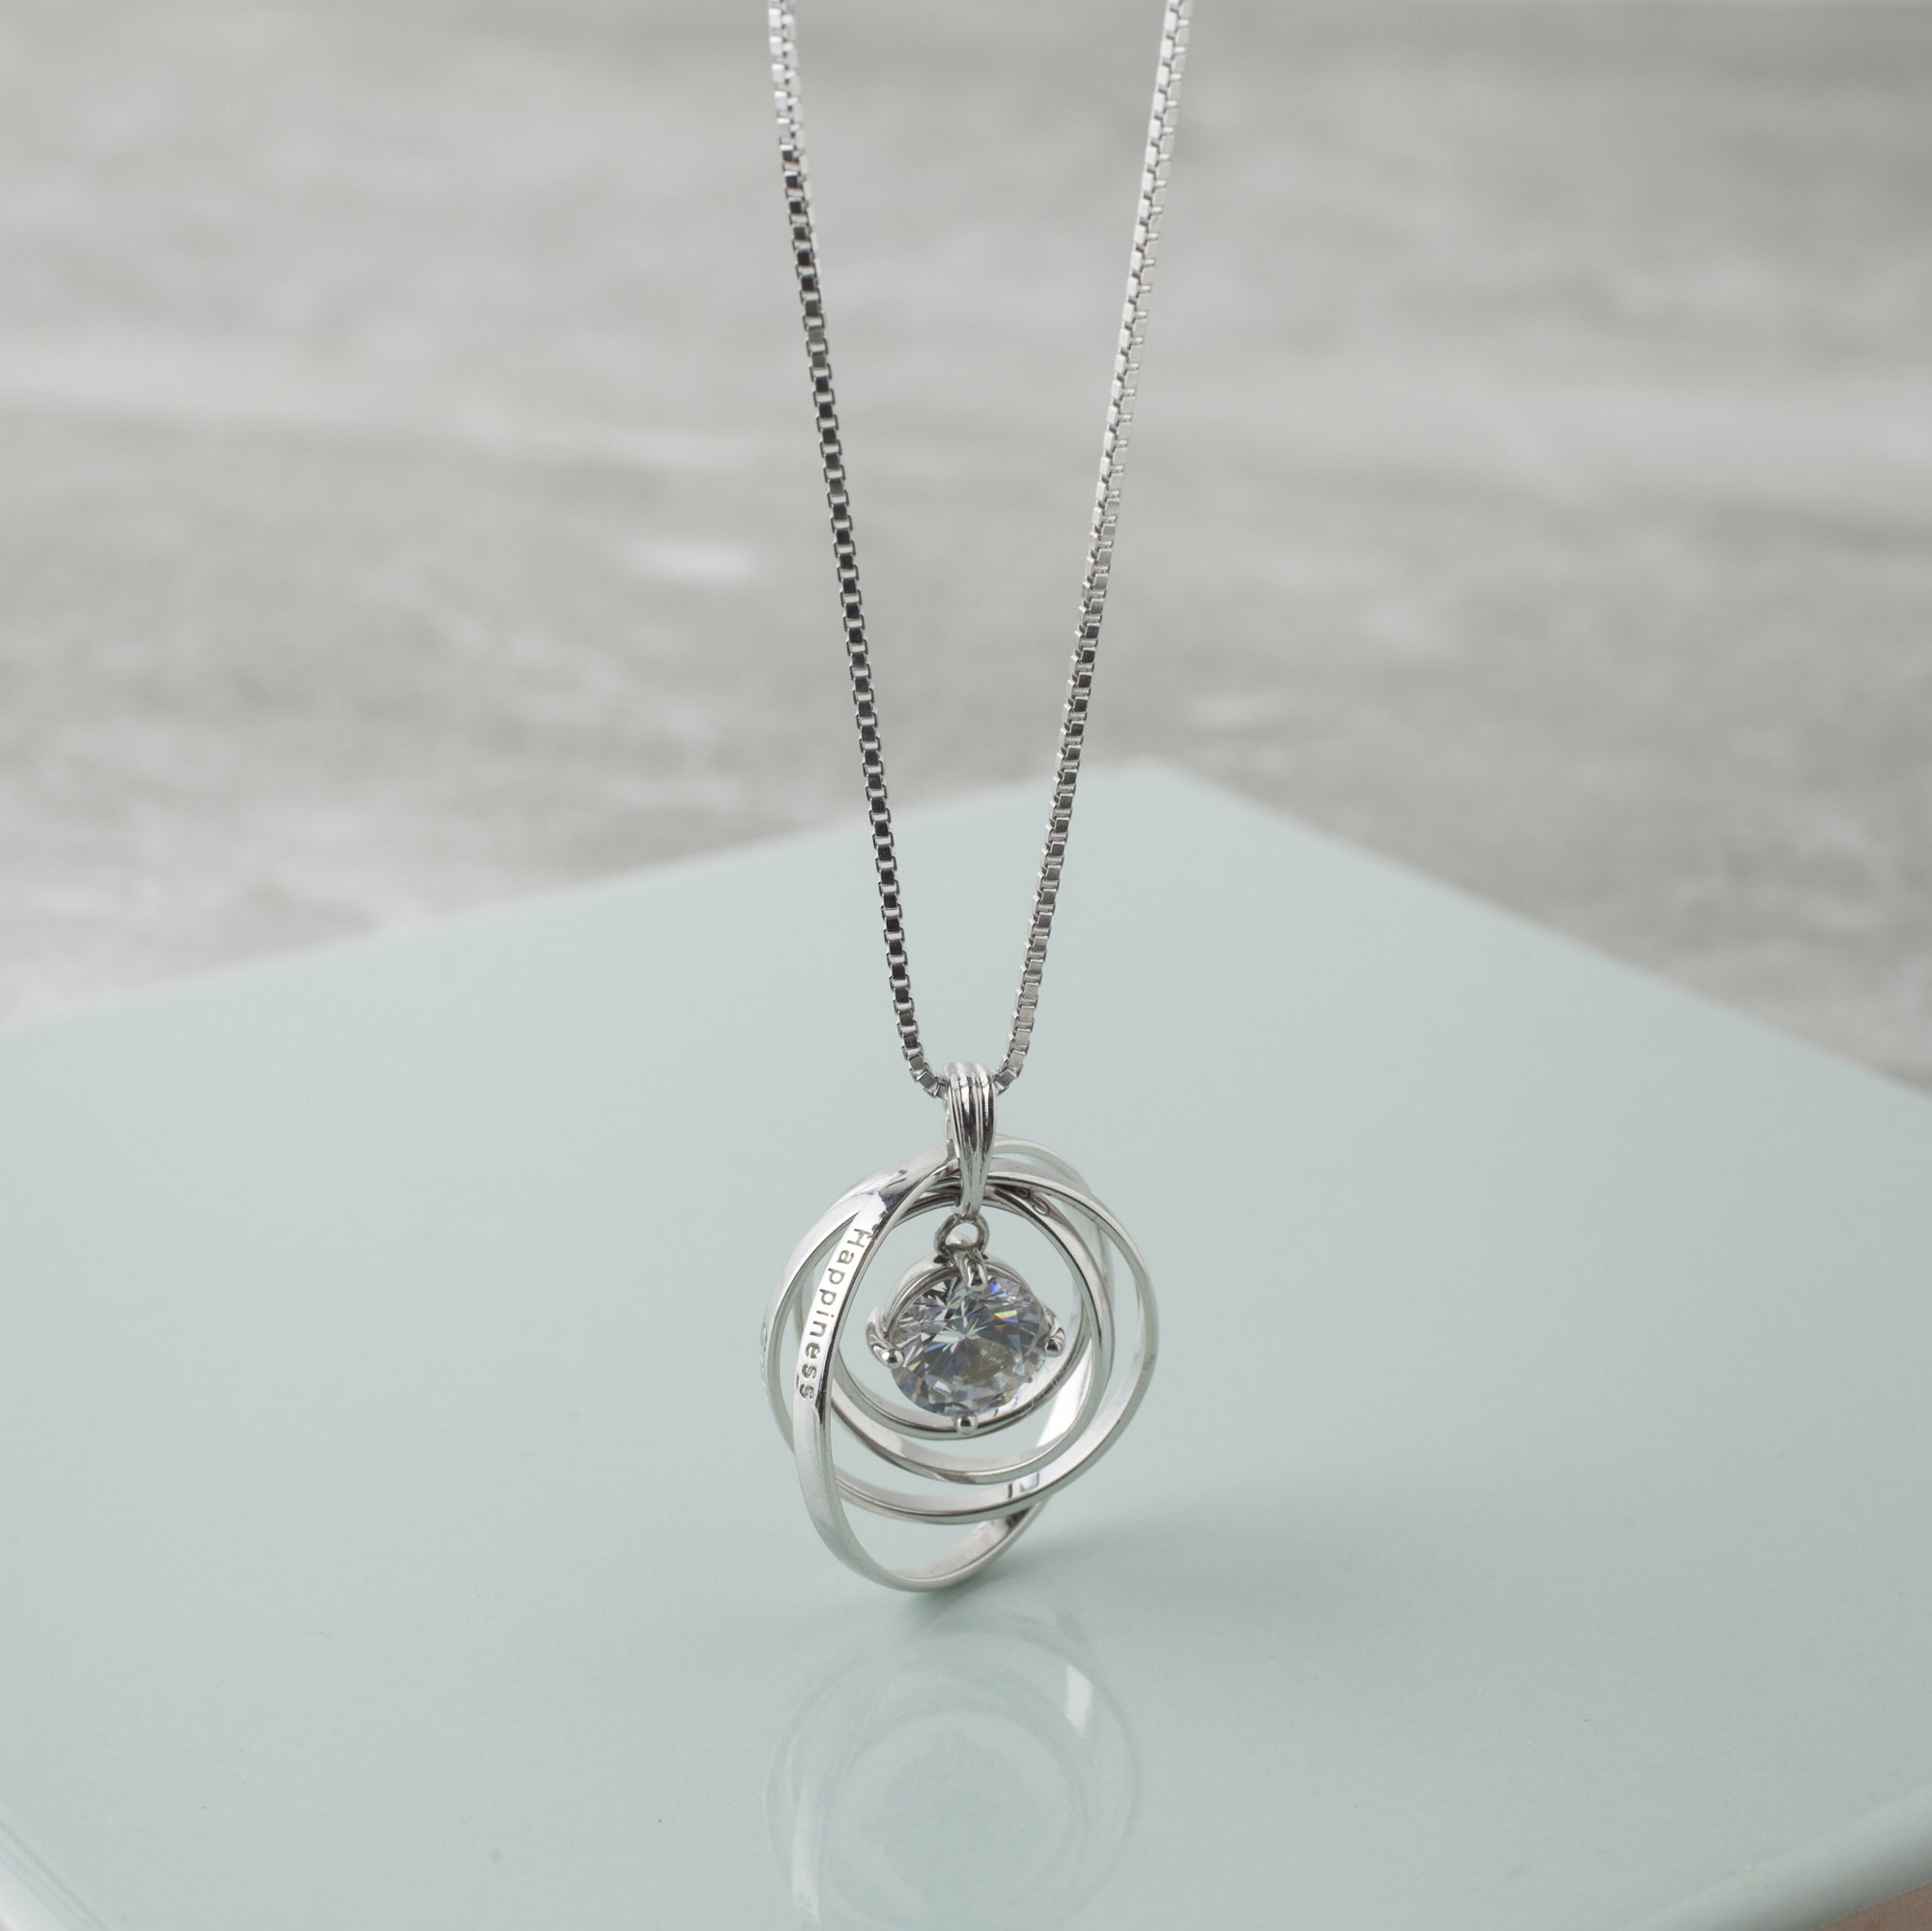 gallery jewelry necklace product in pendant silver lyst swarovski metallic normal yang yin